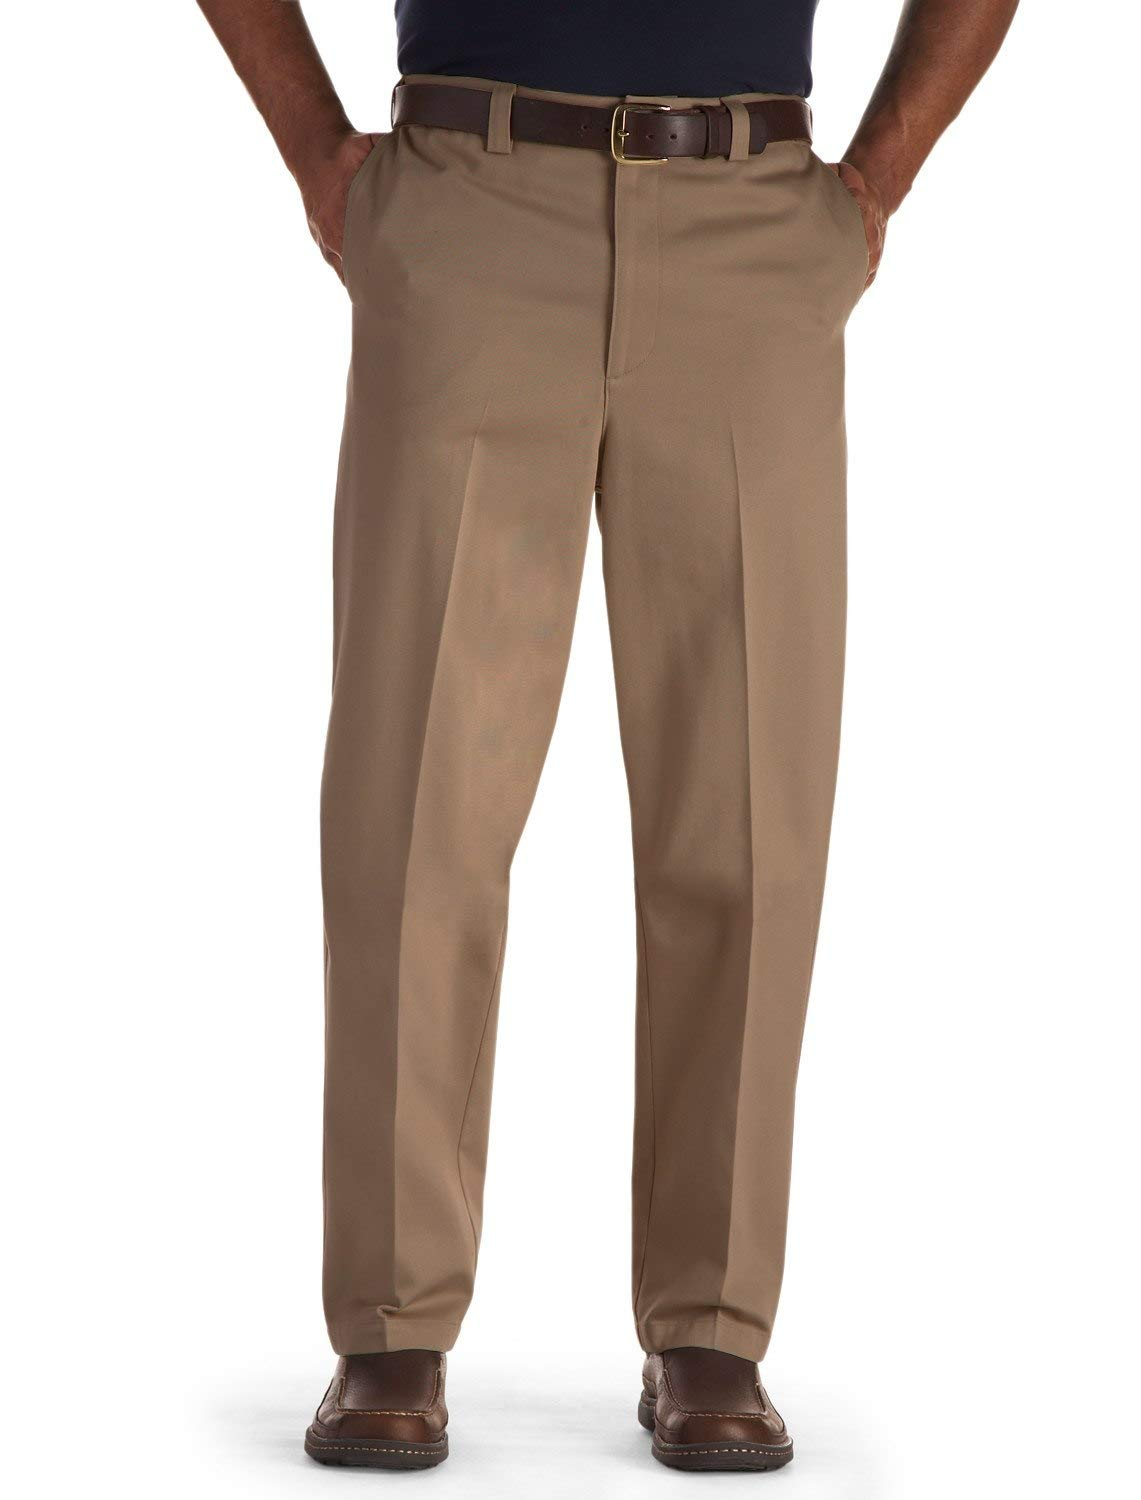 Oak Hill by DXL Big and Tall Flat-Front Premium Stretch Twill Pants, Latte, 48 X 30, Regular Rise